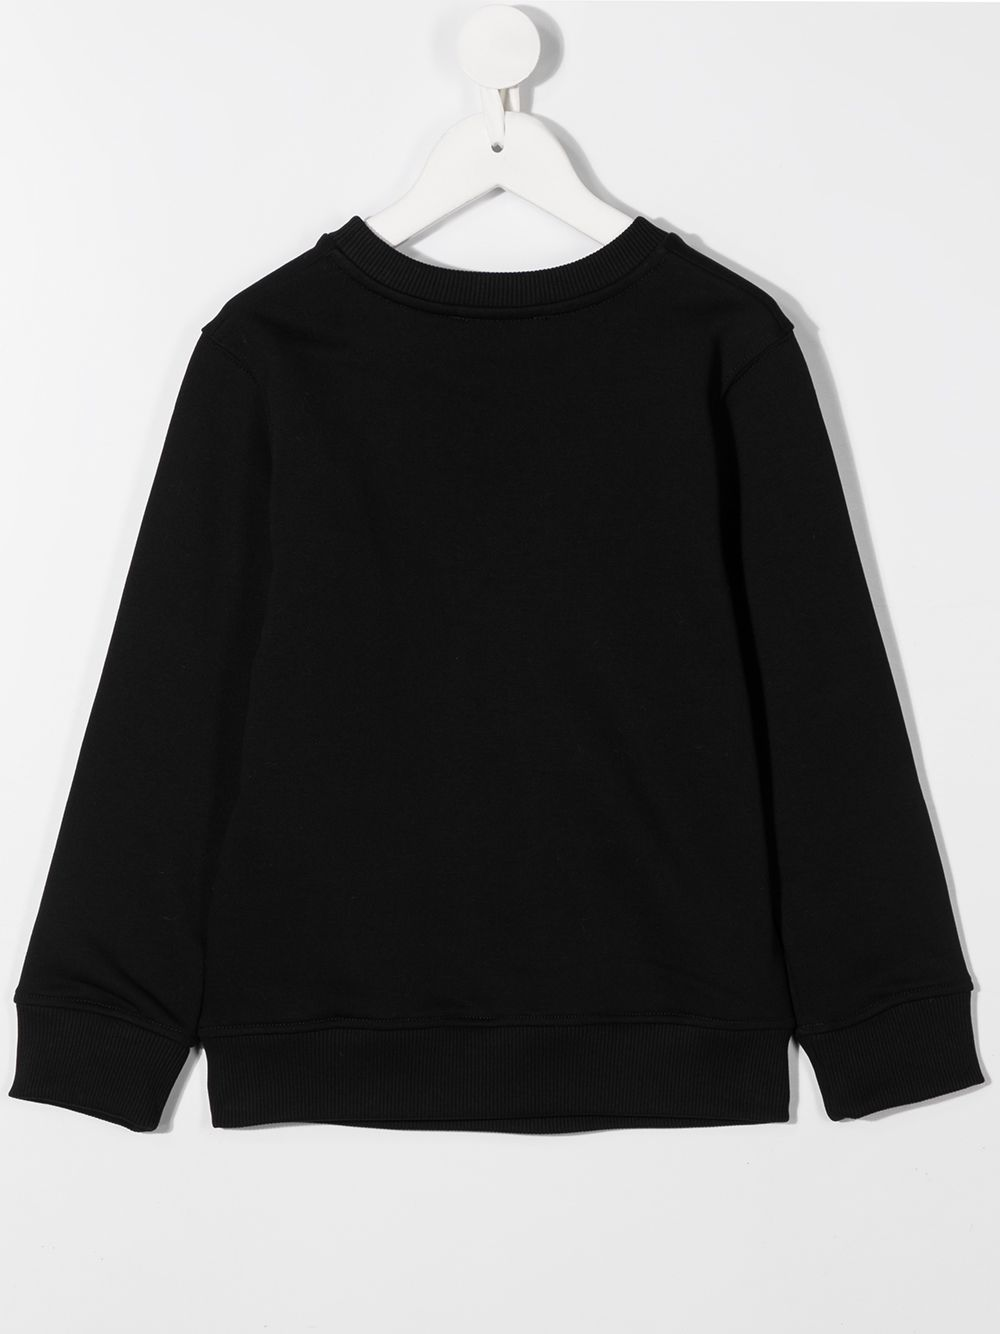 GIVENCHY KIDS Logo Sweatshirt Black/White - Maison De Fashion